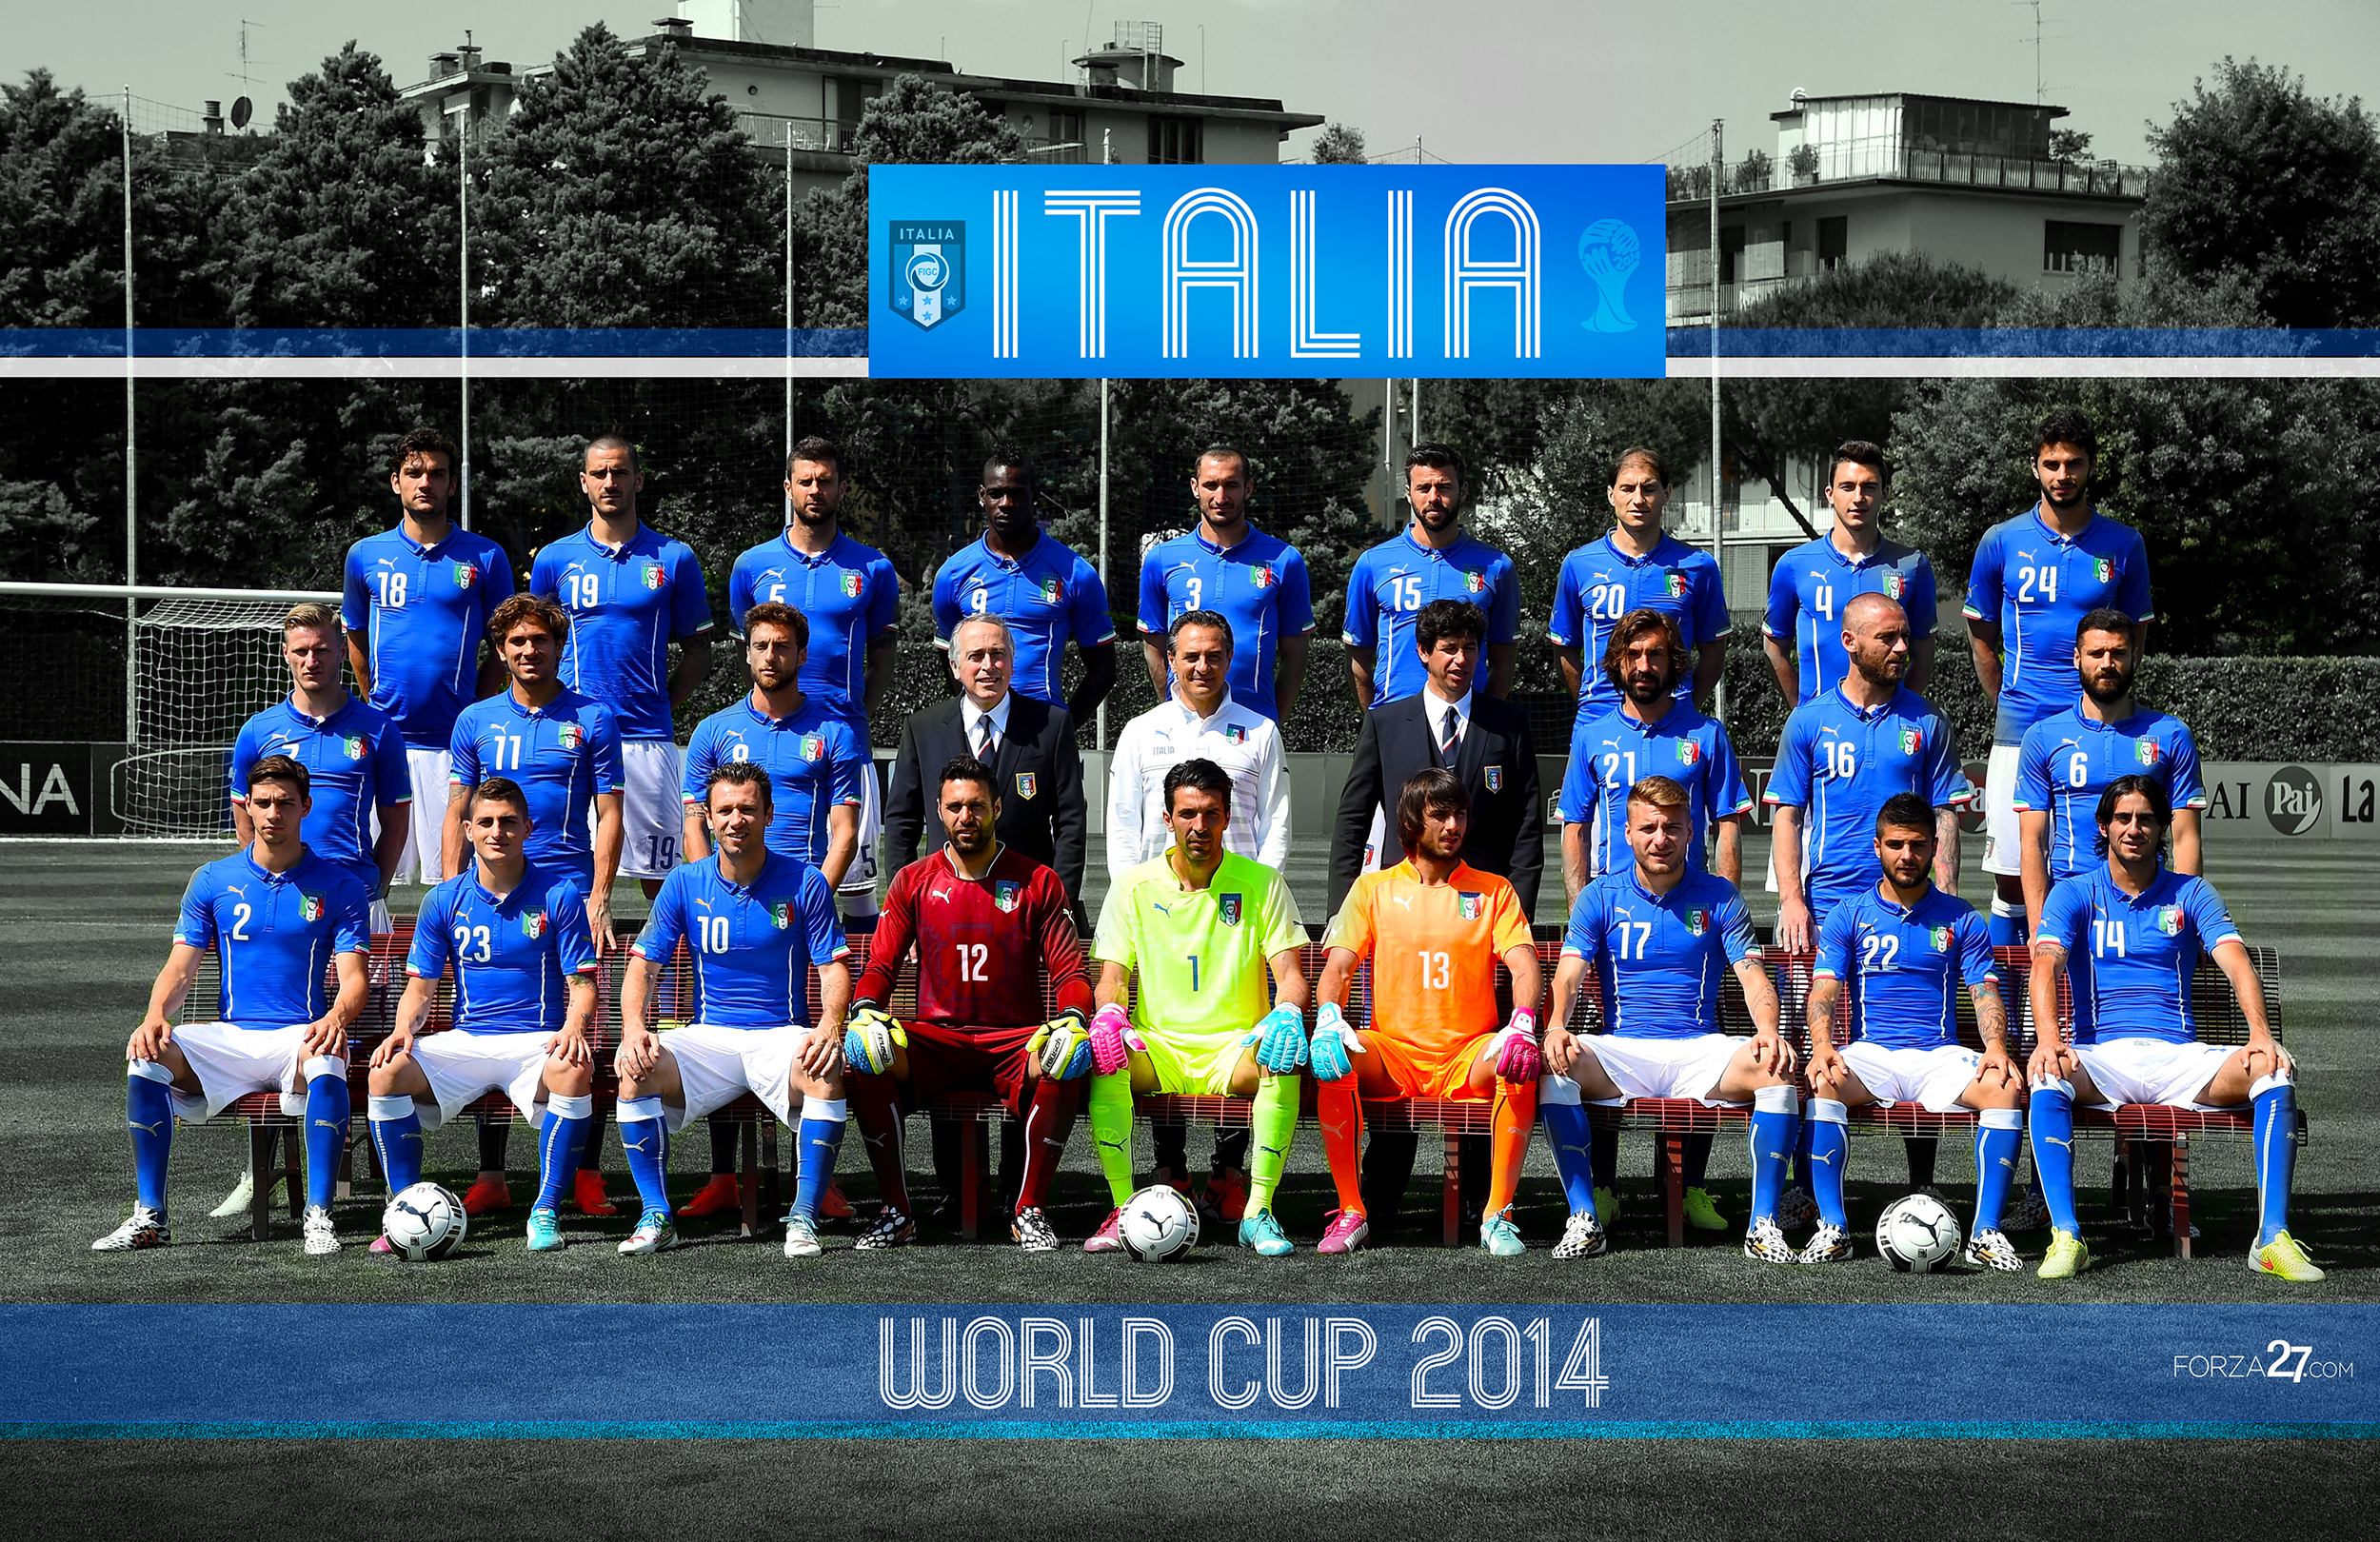 Italy Team Photo And Portraits